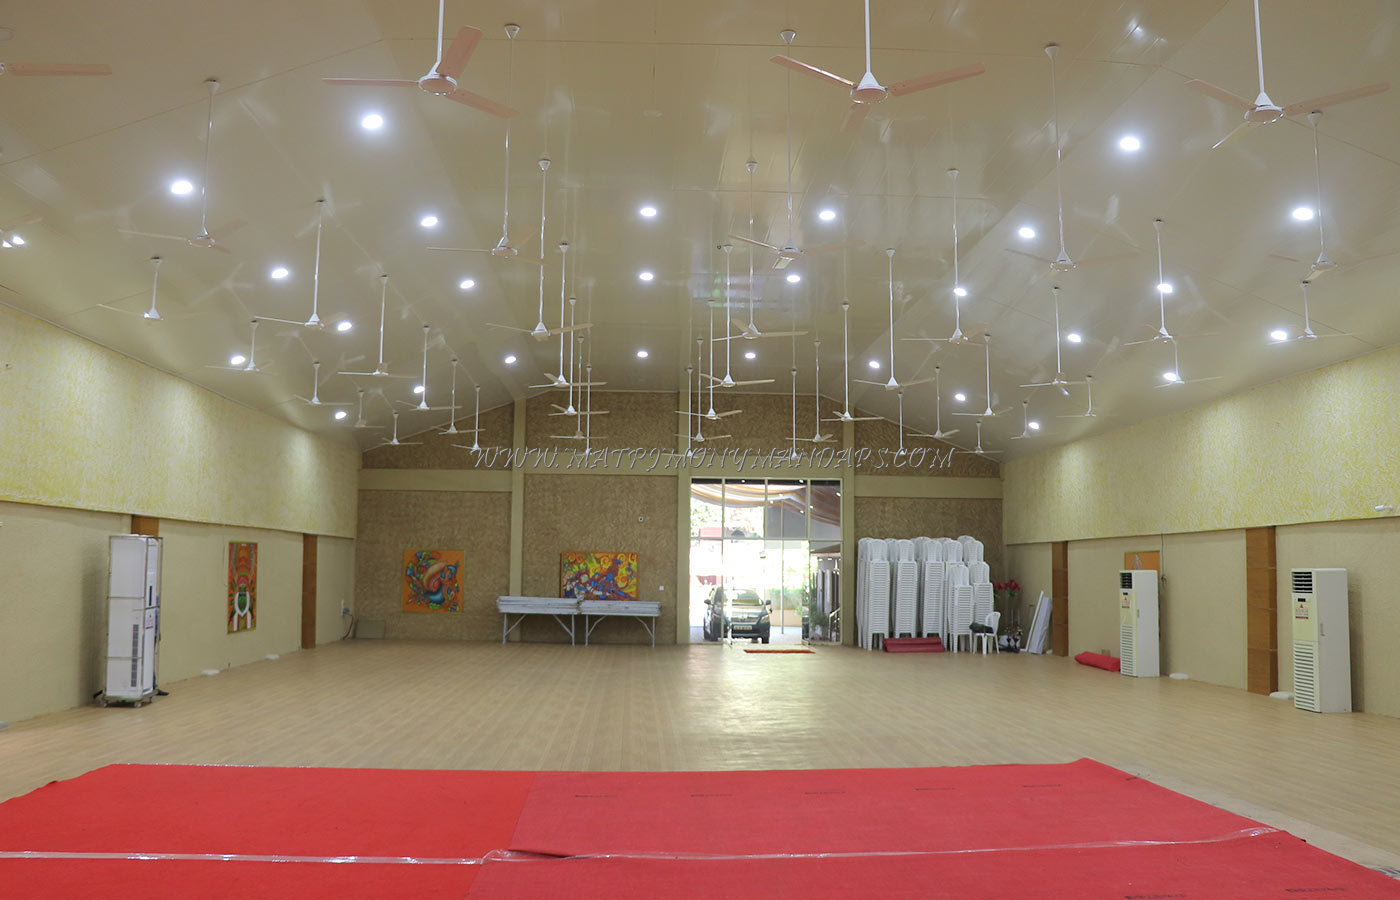 Find the availability of the Avishkkar Mini Hall in Edappally, Kochi and avail special offers